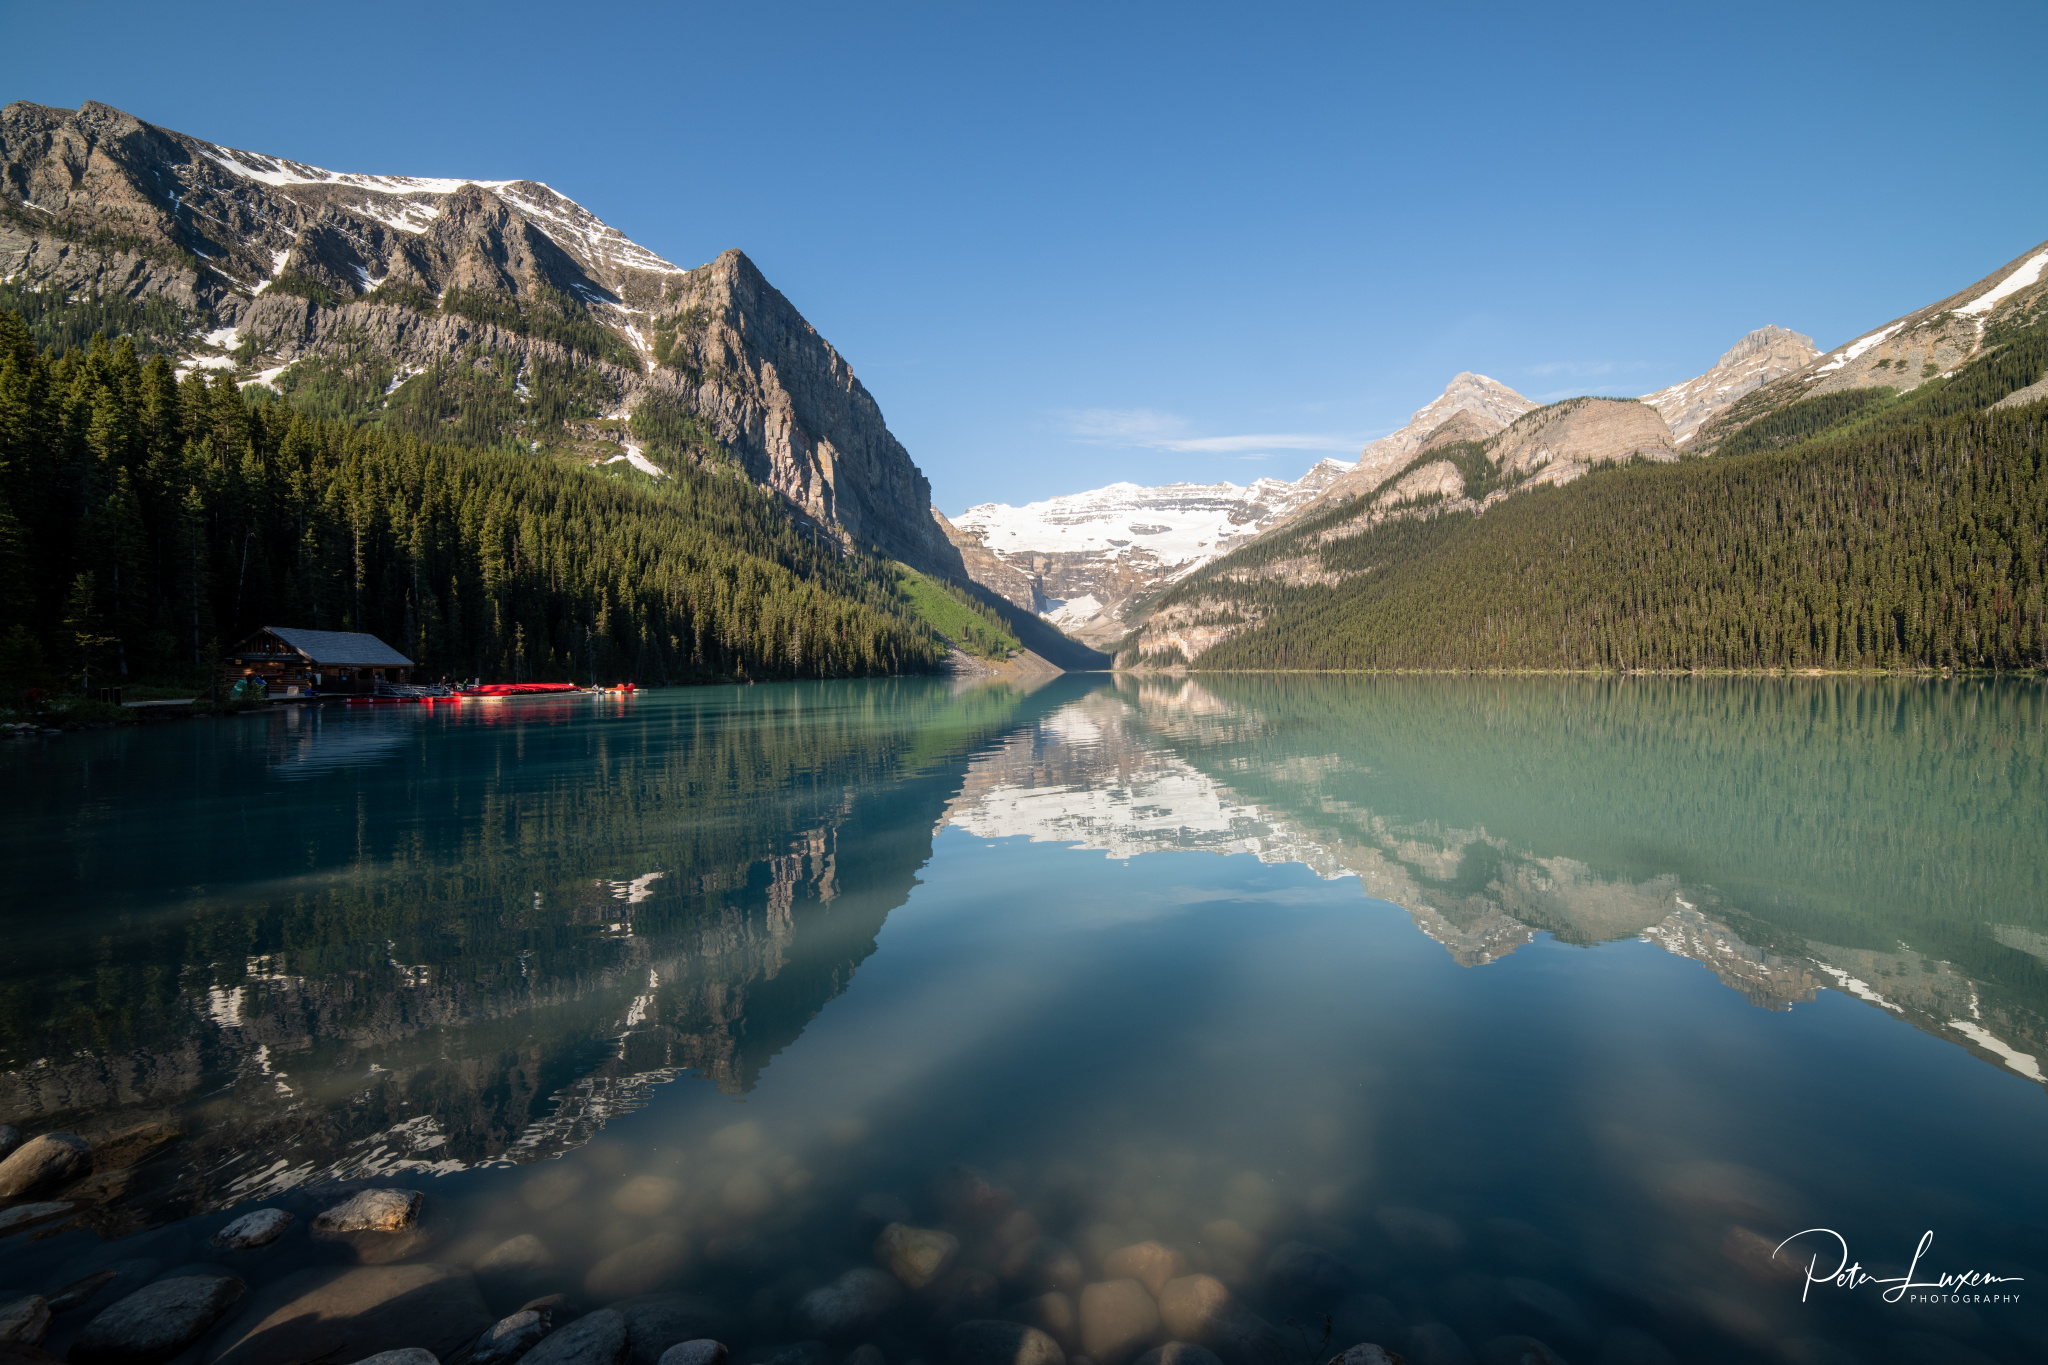 Lake Louise (near Parking), Canada